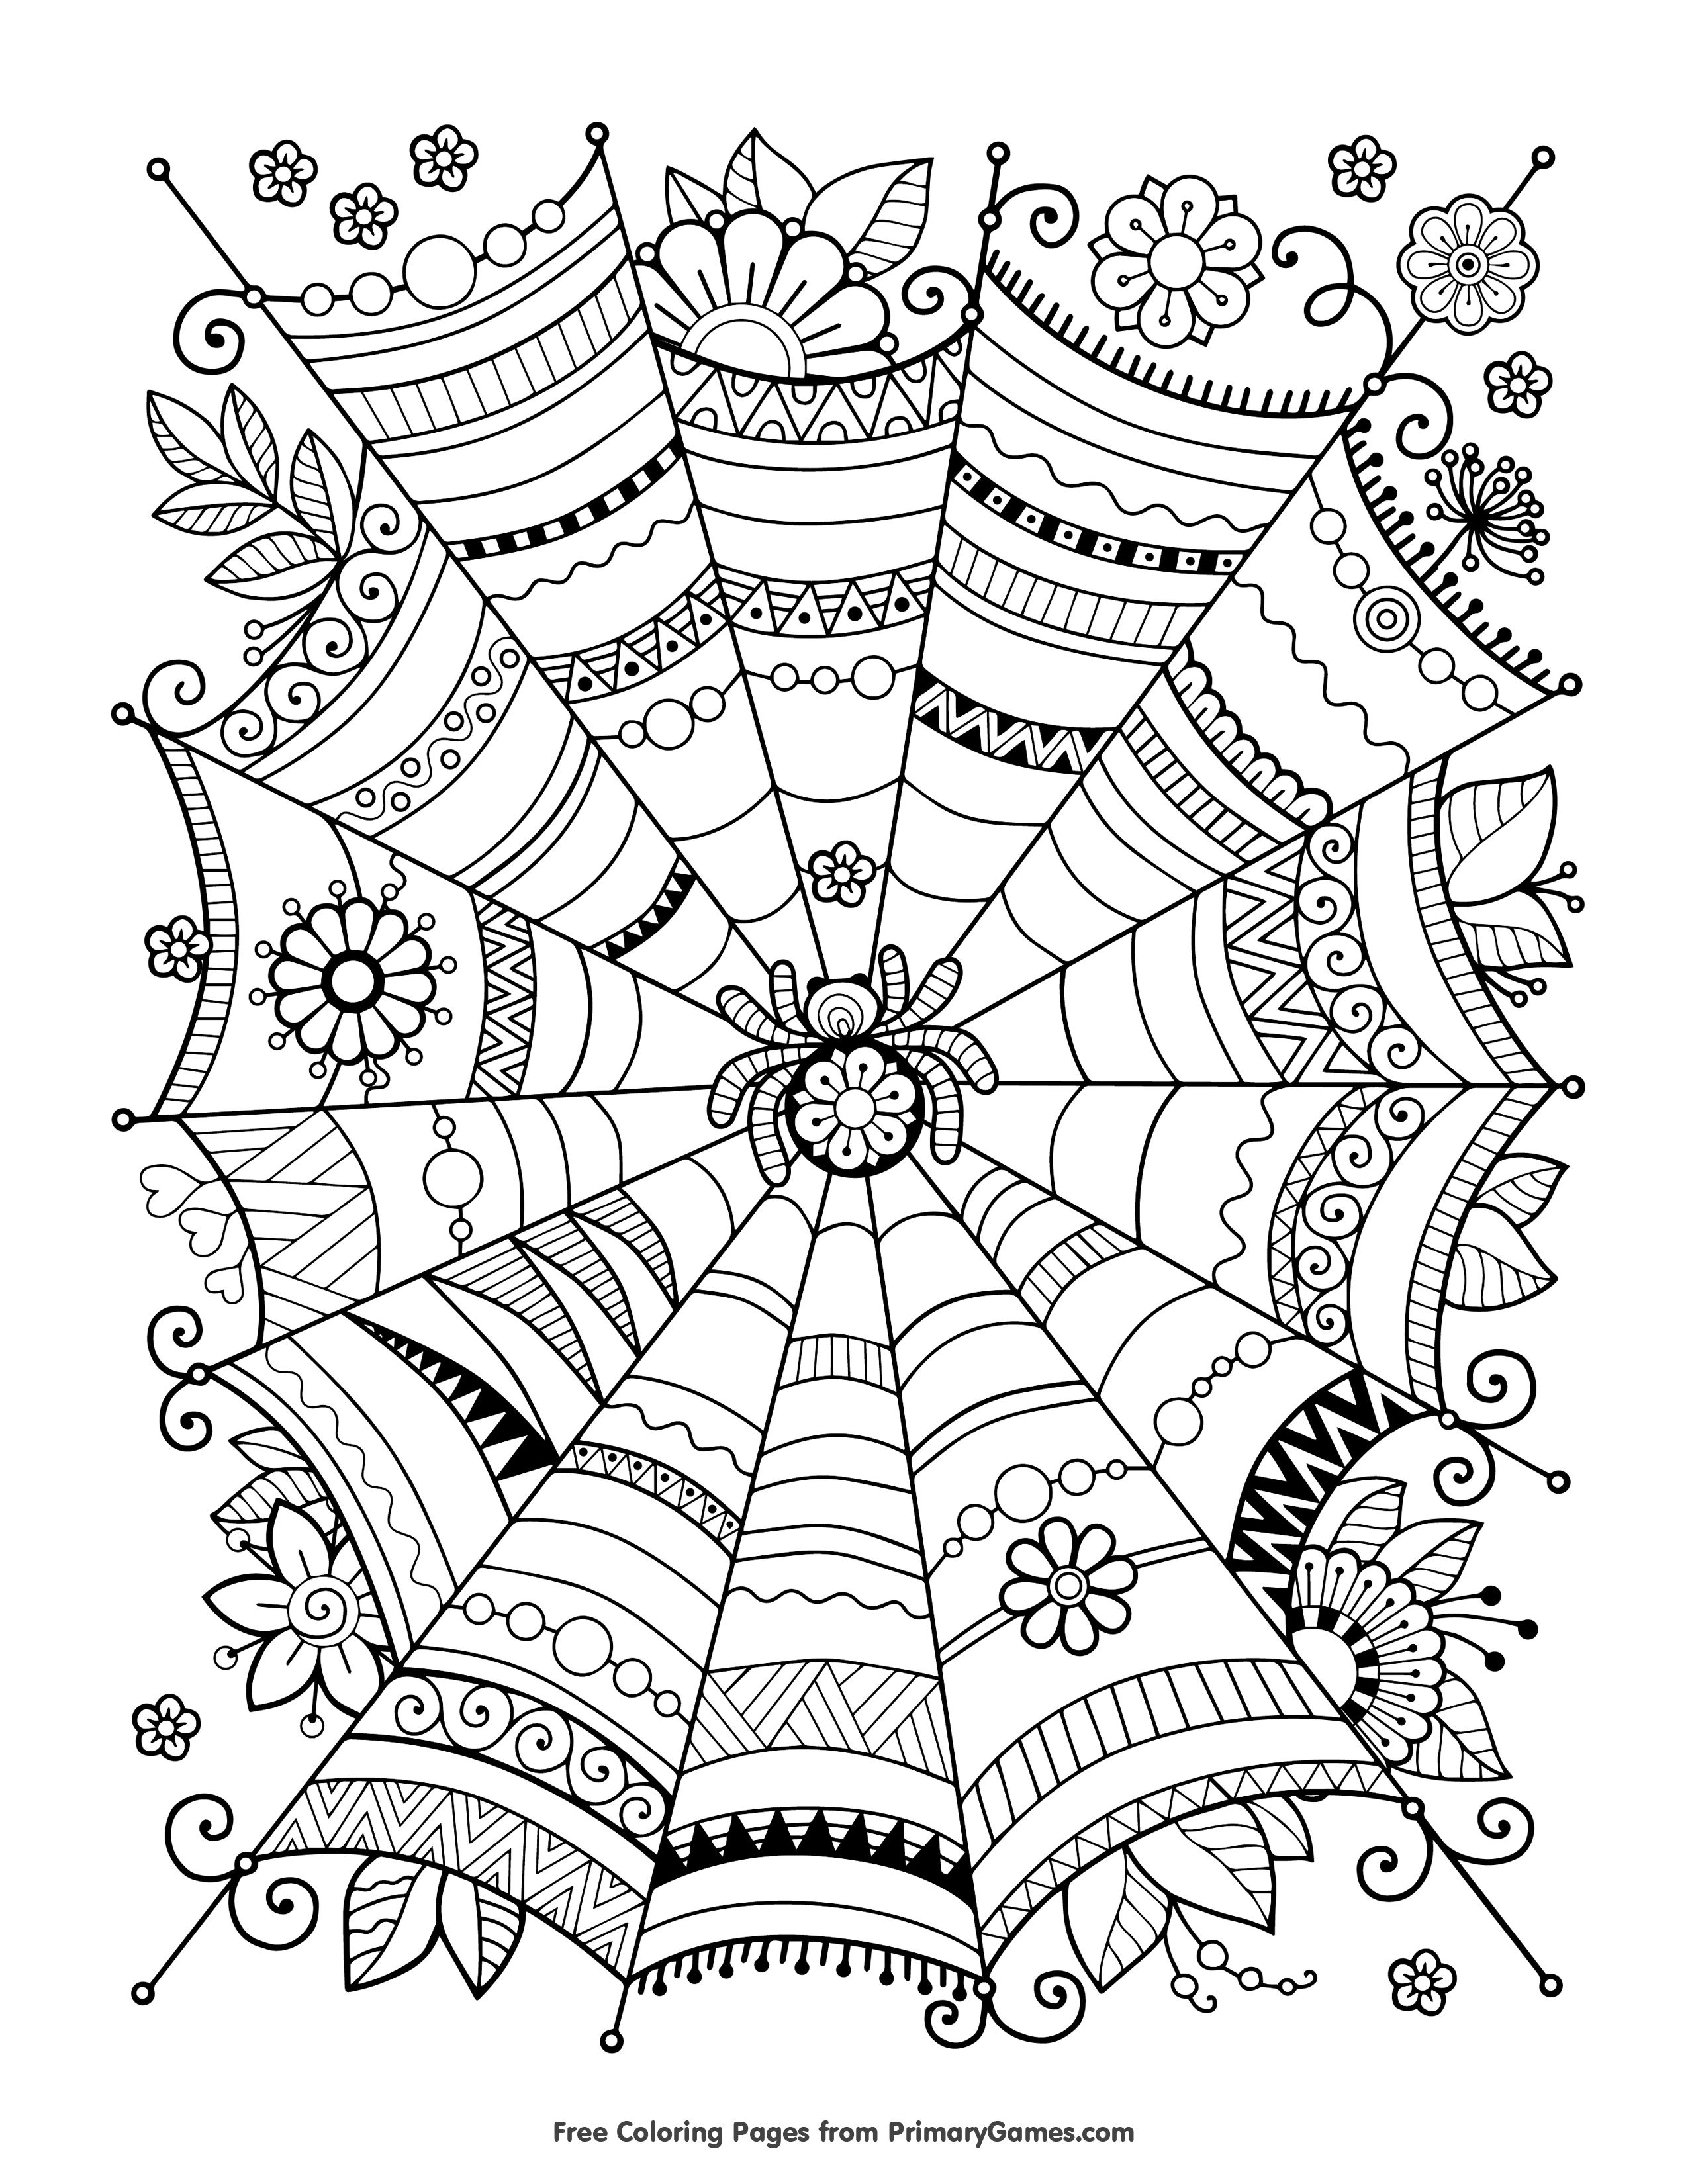 Zentangle Spider Web Coloring Page Free Printable Ebook